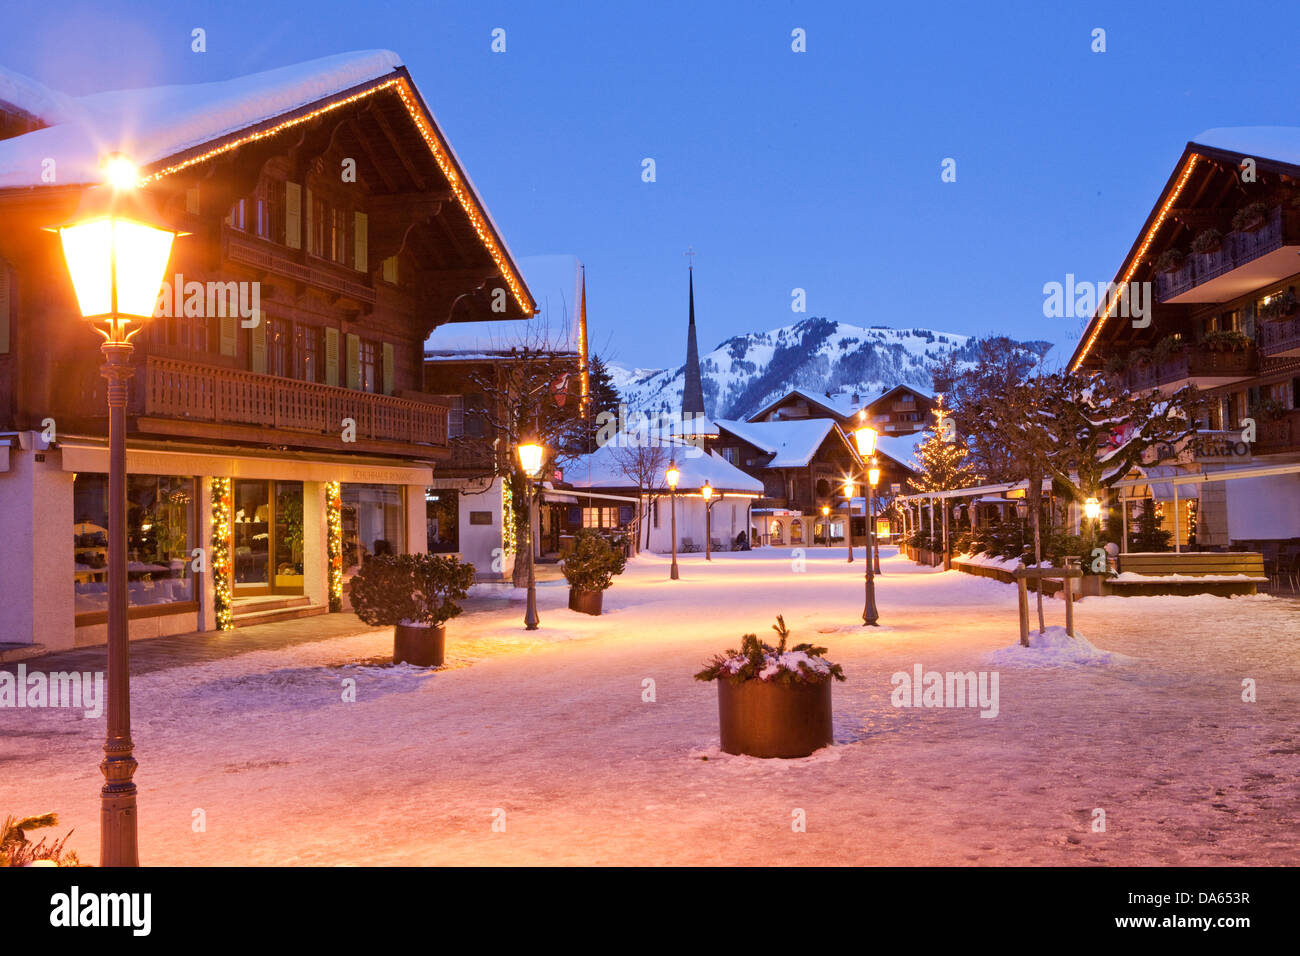 gstaad village hiver nuit sombre canton berne oberland bernois suisse europe lumi res. Black Bedroom Furniture Sets. Home Design Ideas